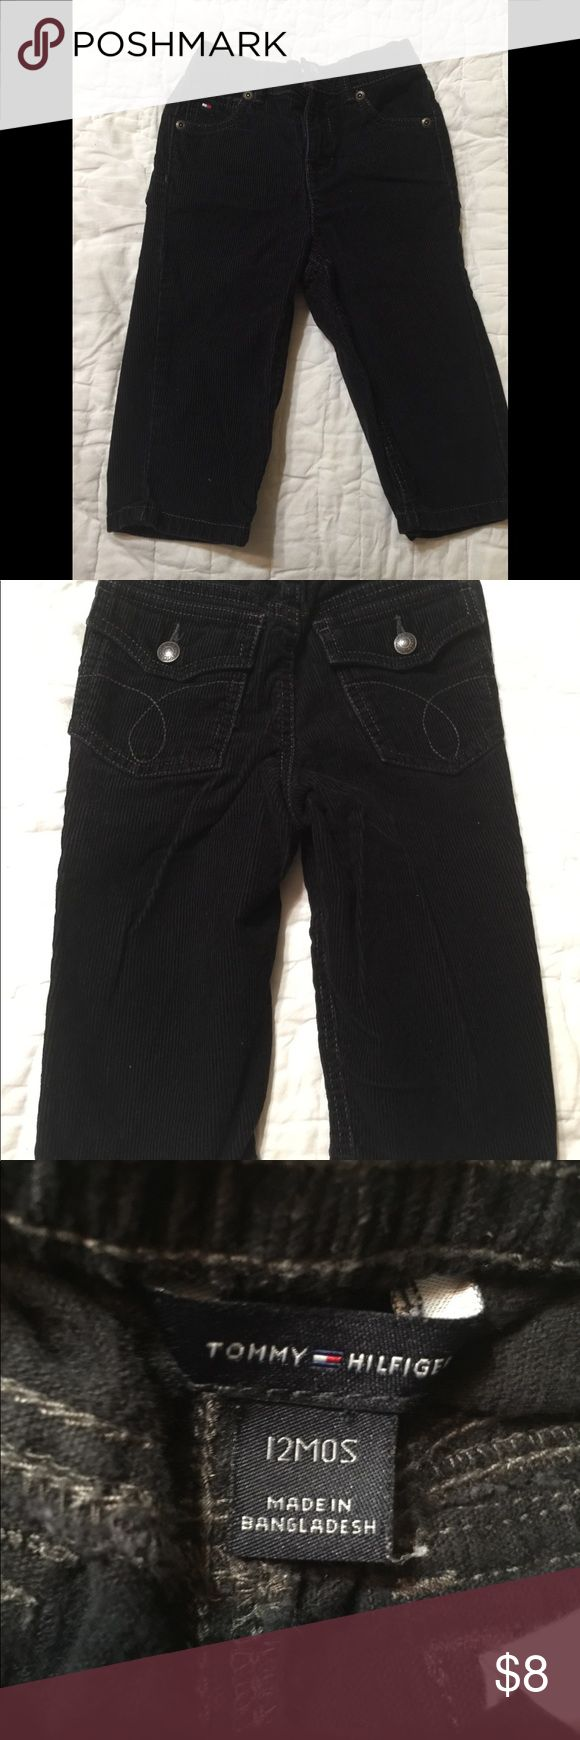 Tommy Hilfiger black cords size 12 months Tommy Hilfiger black cords size 12 months Non smoking home Discount for 3 or more items  Fast shipping Tommy Hilfiger Bottoms